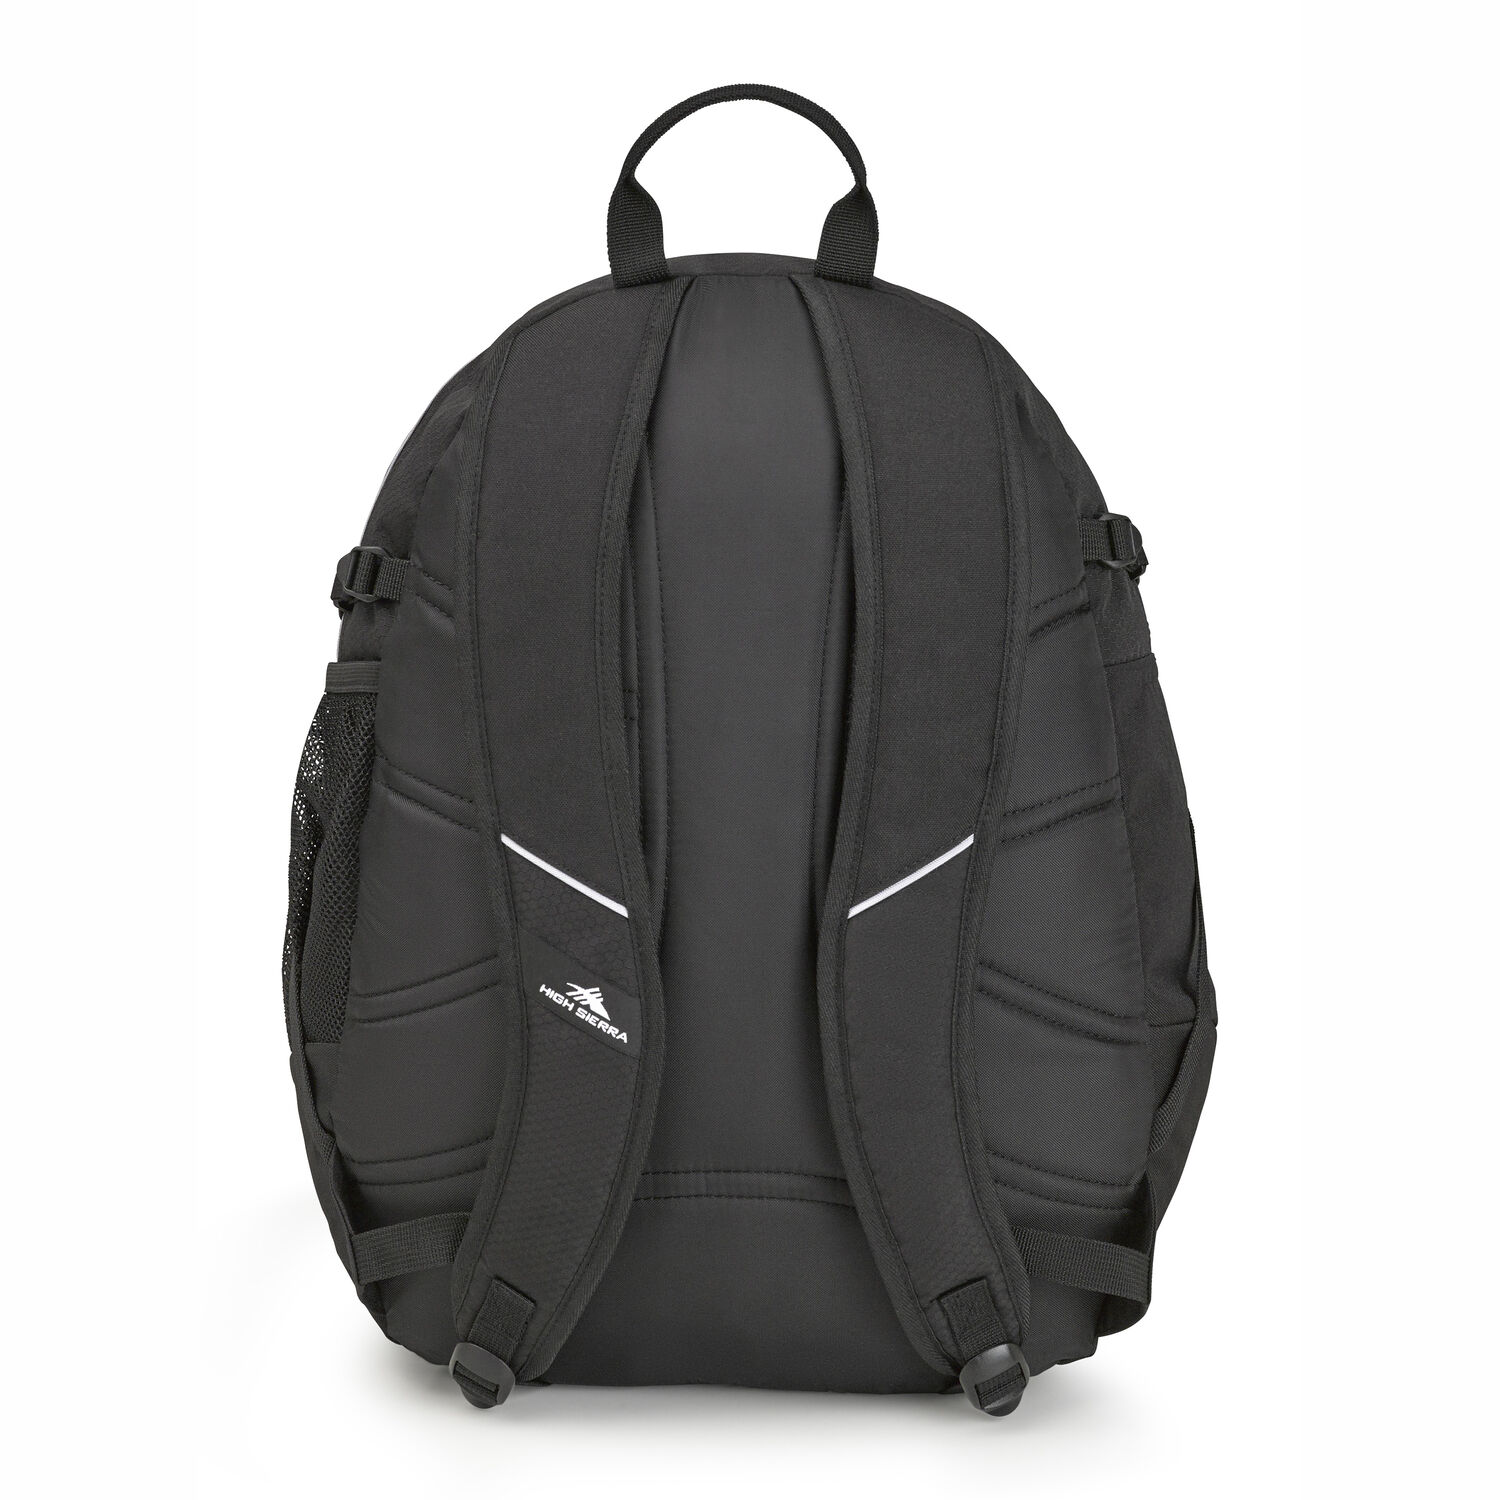 e4a2d6fc21 High Sierra Fatboy Backpack in the color Black.